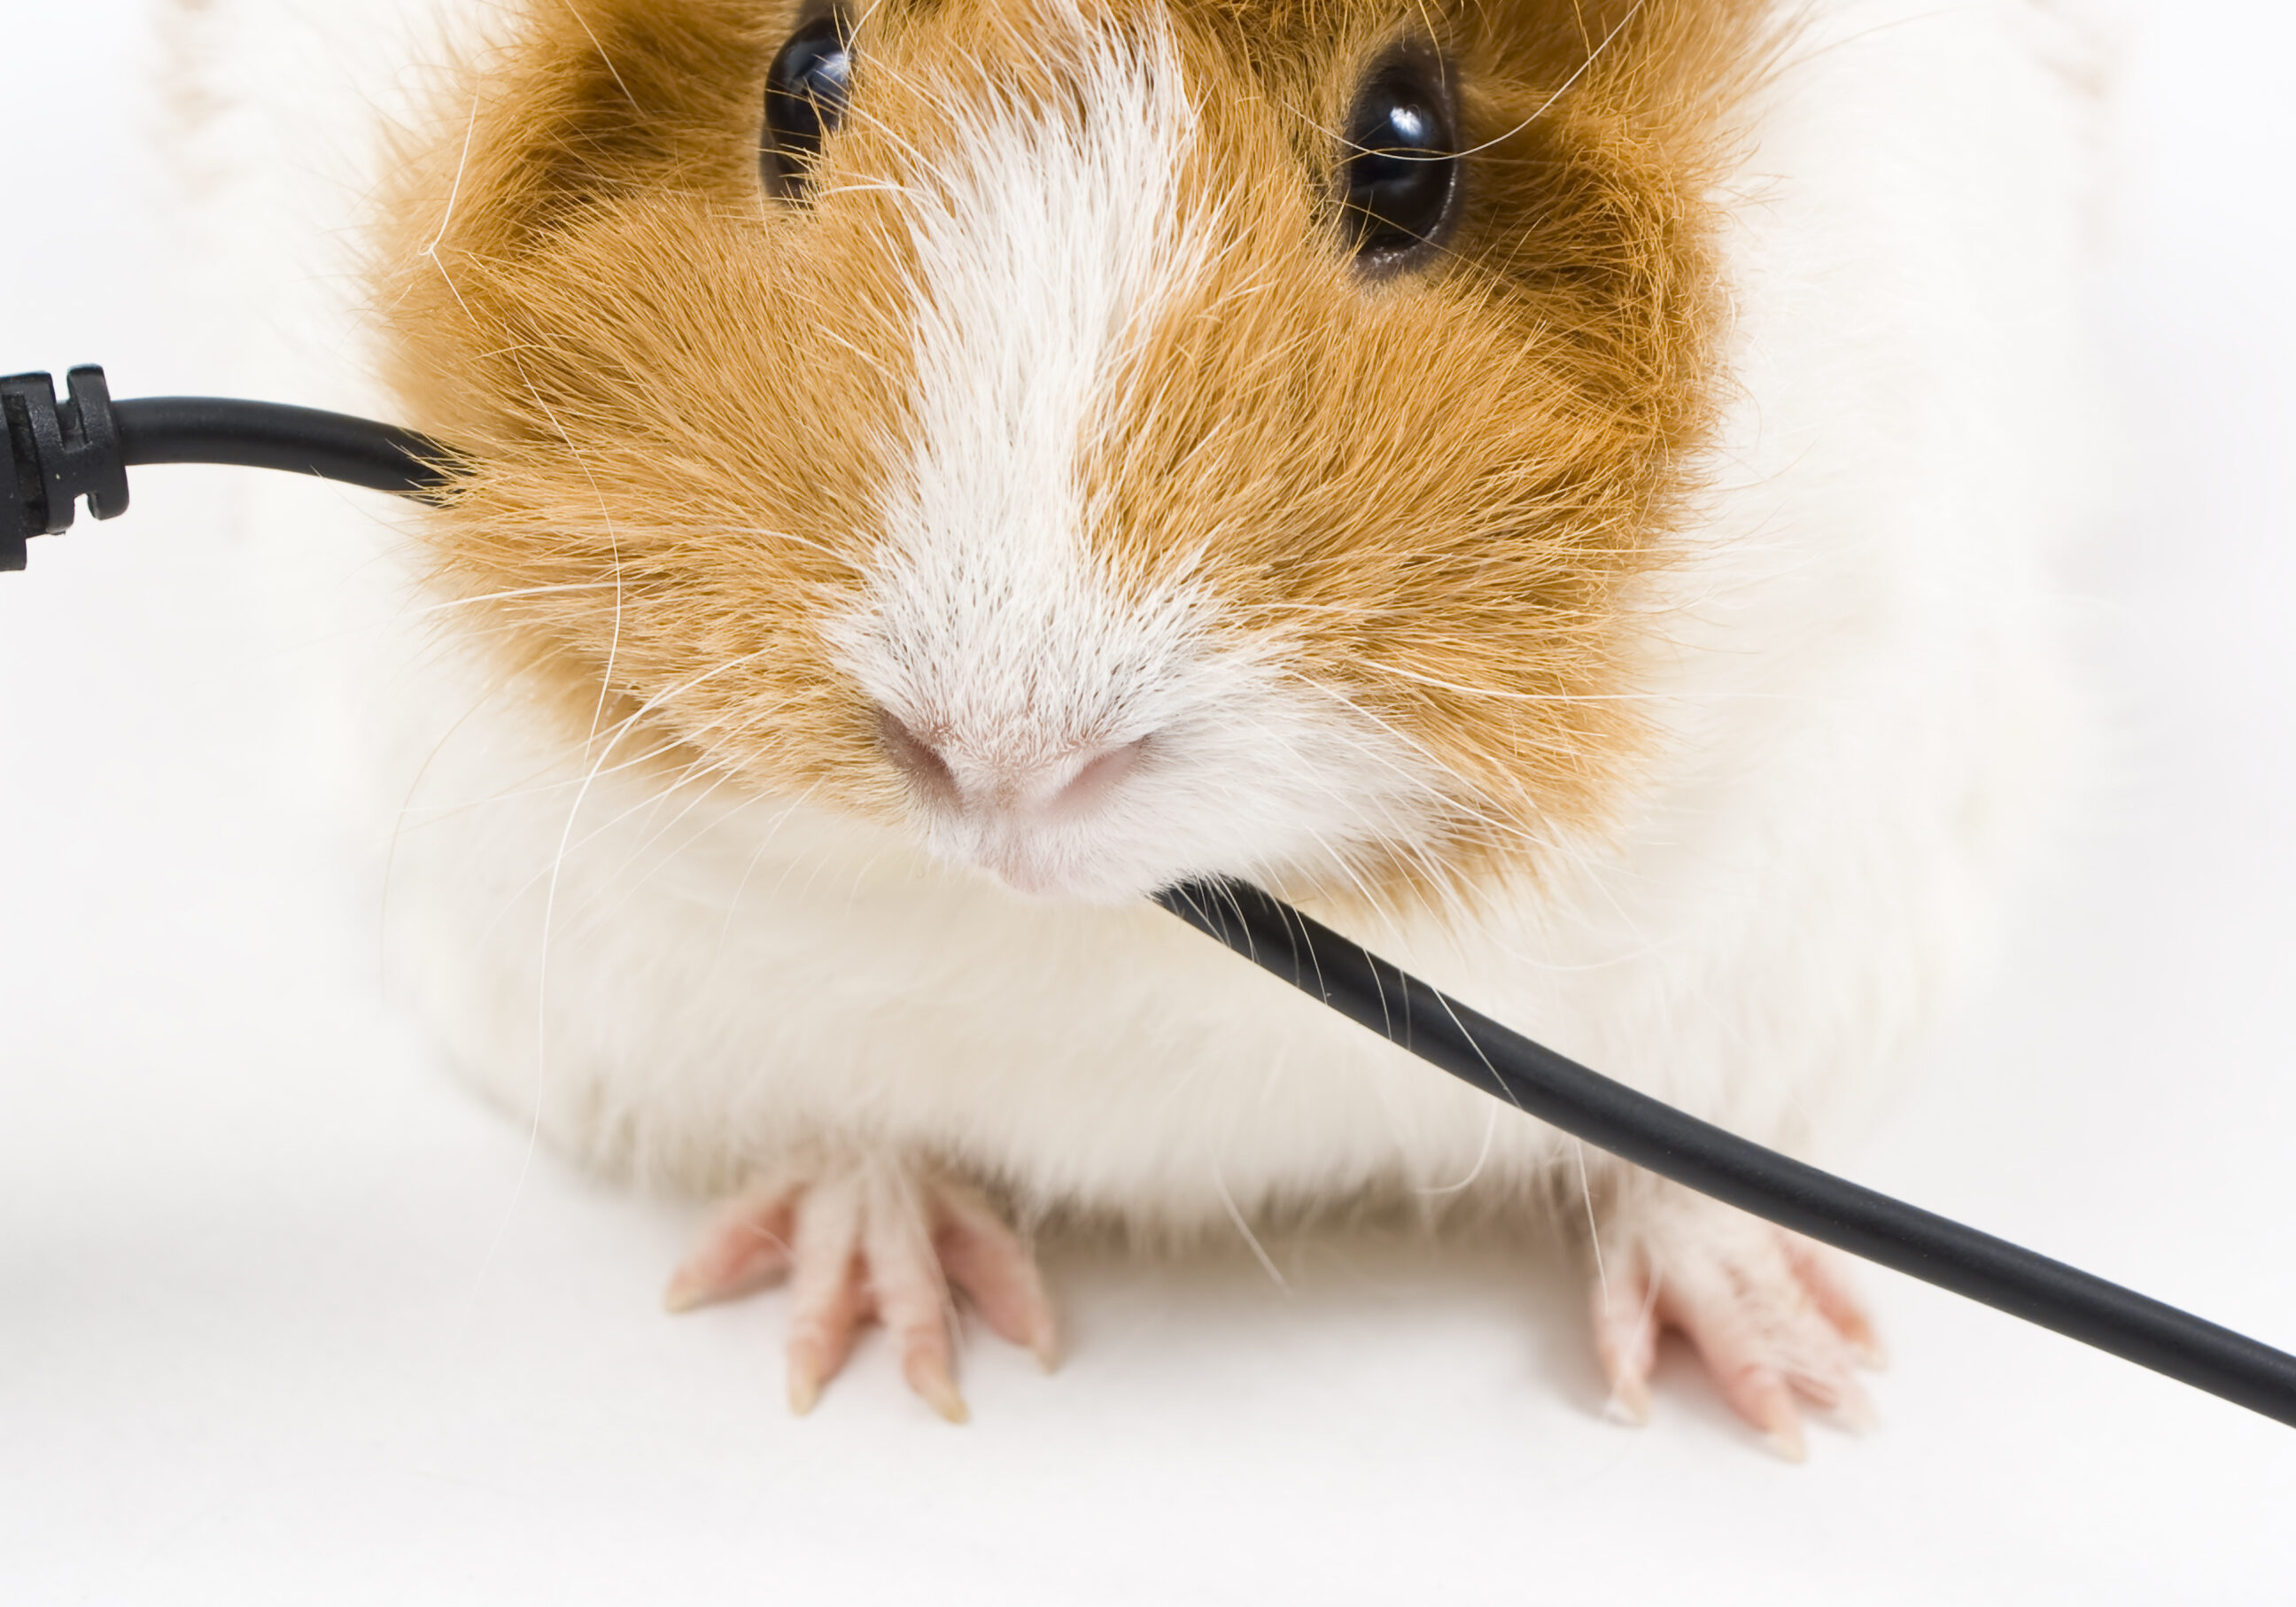 Little guinea pig eating a blalck usb cable